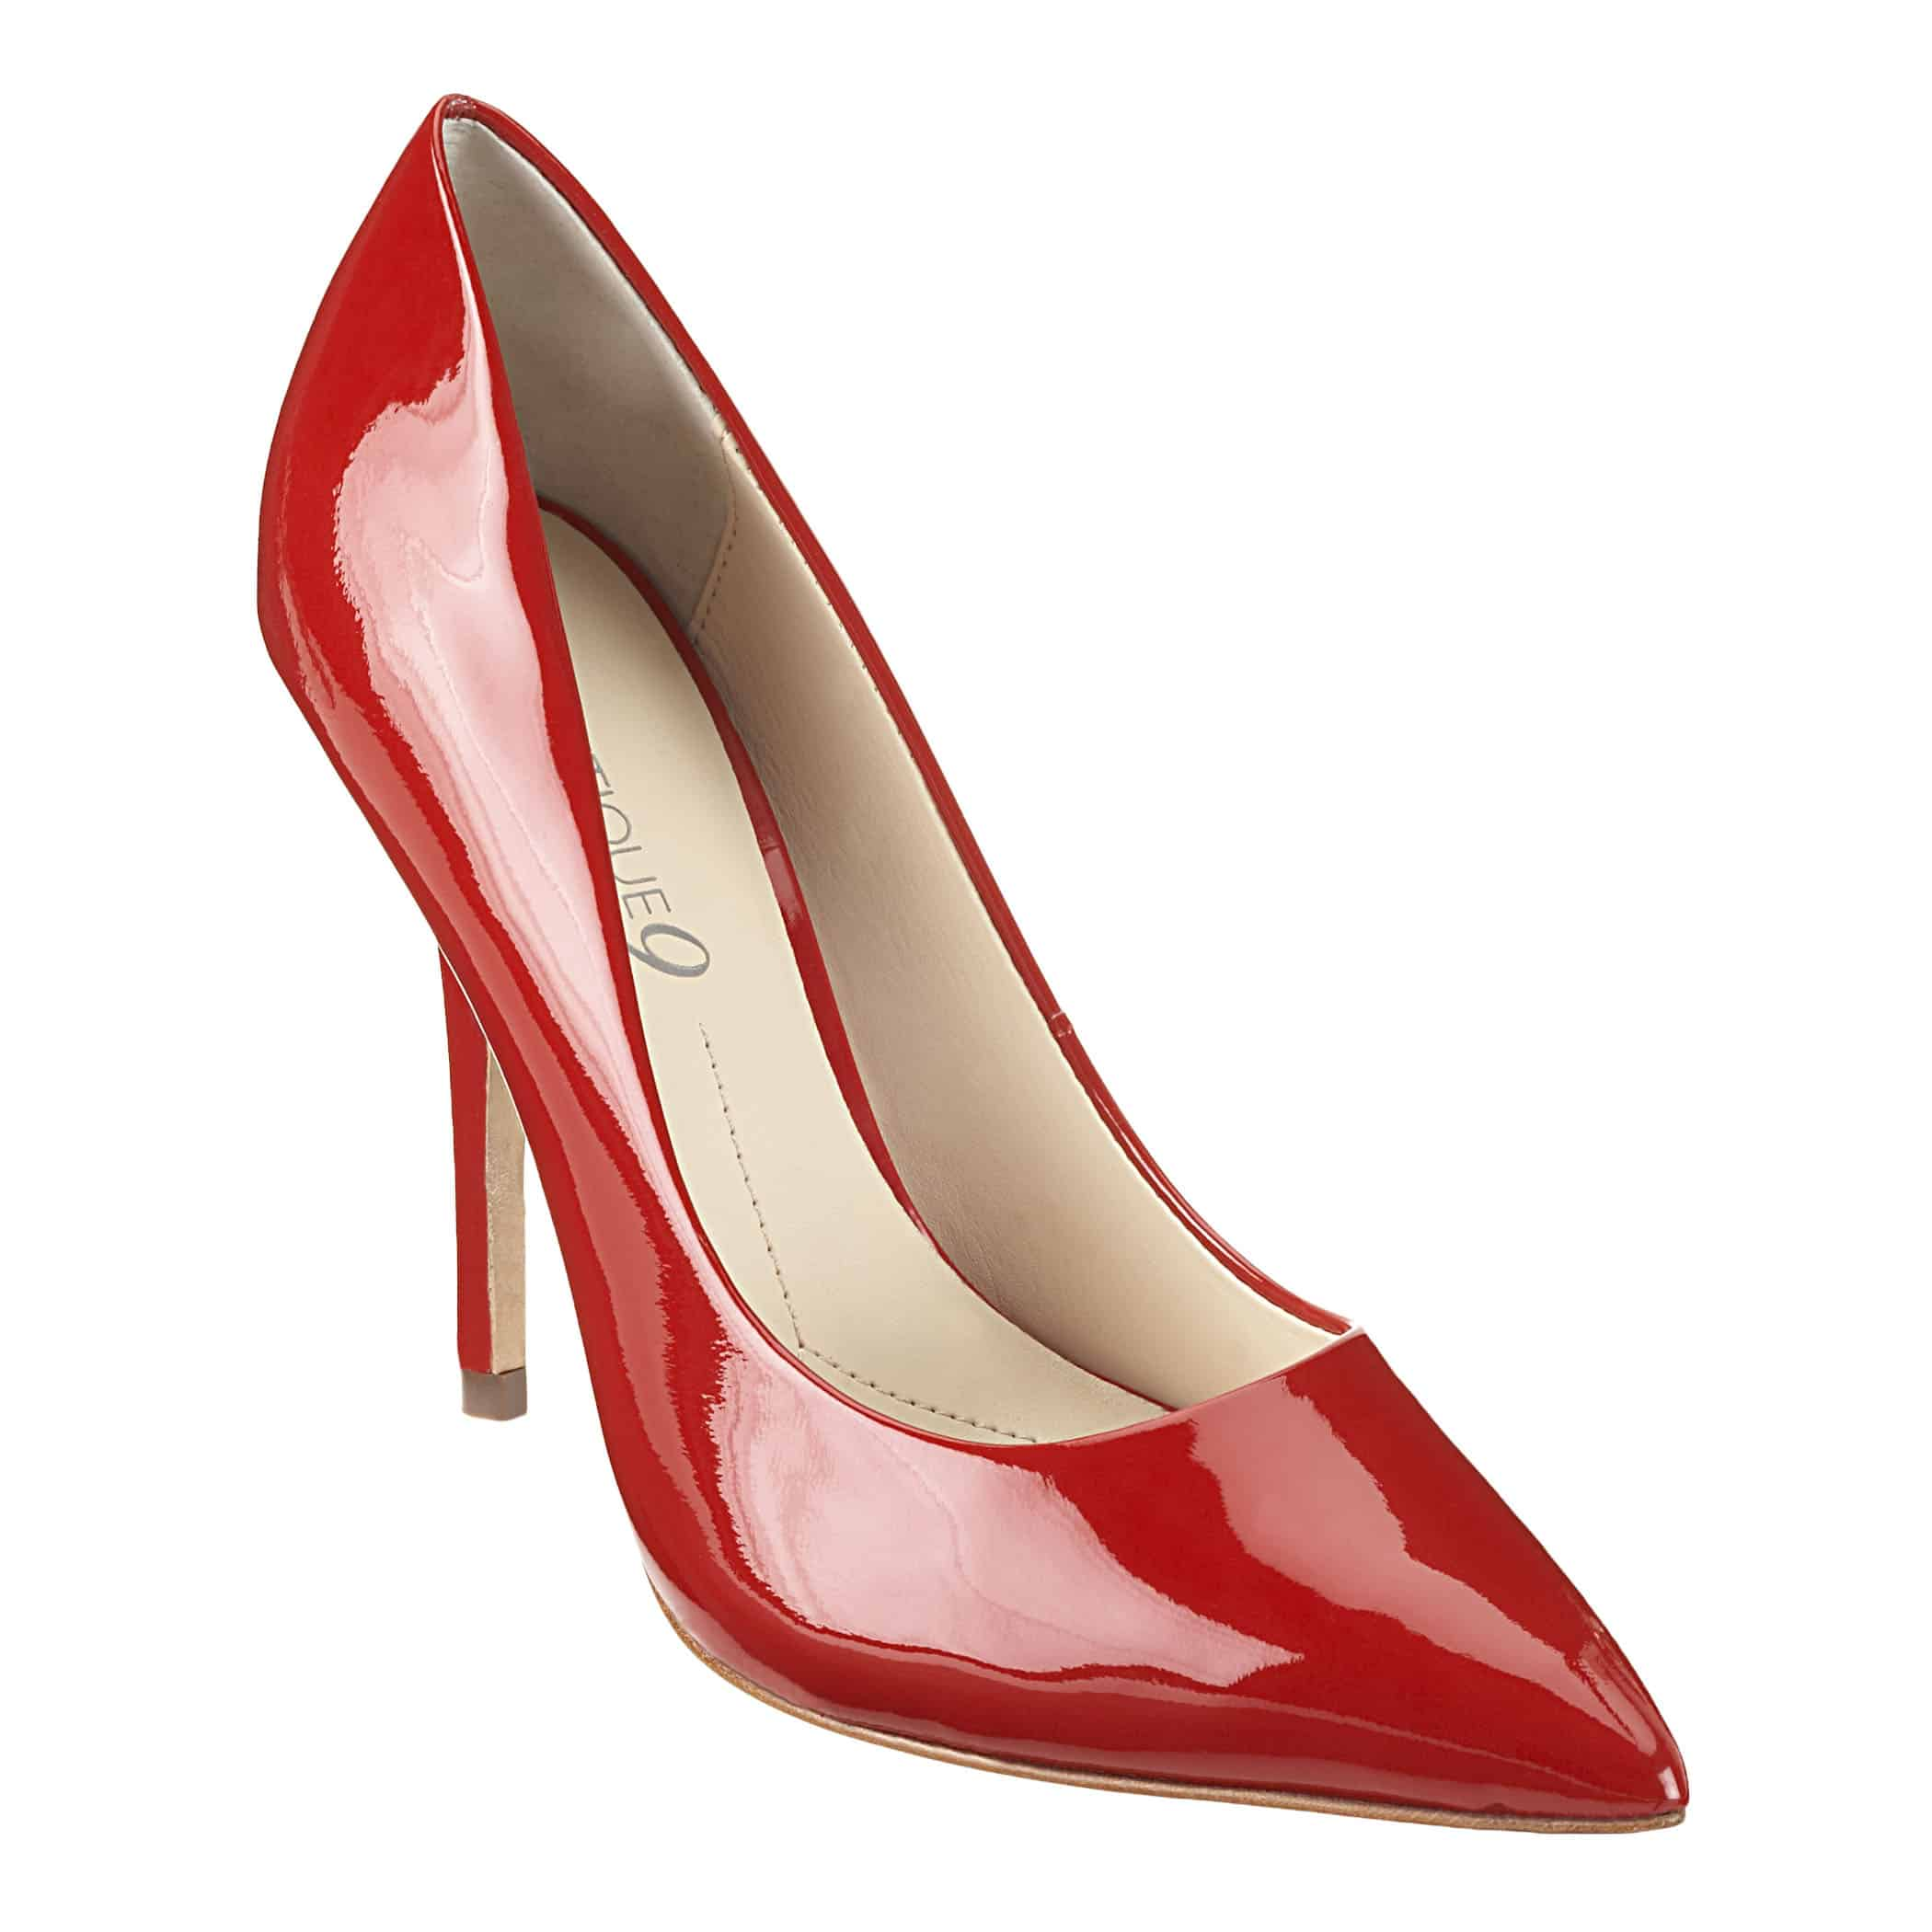 party red heels shoes Holiday Party Looks & Styles! What To Wear For 2013 New Years Eve Party?